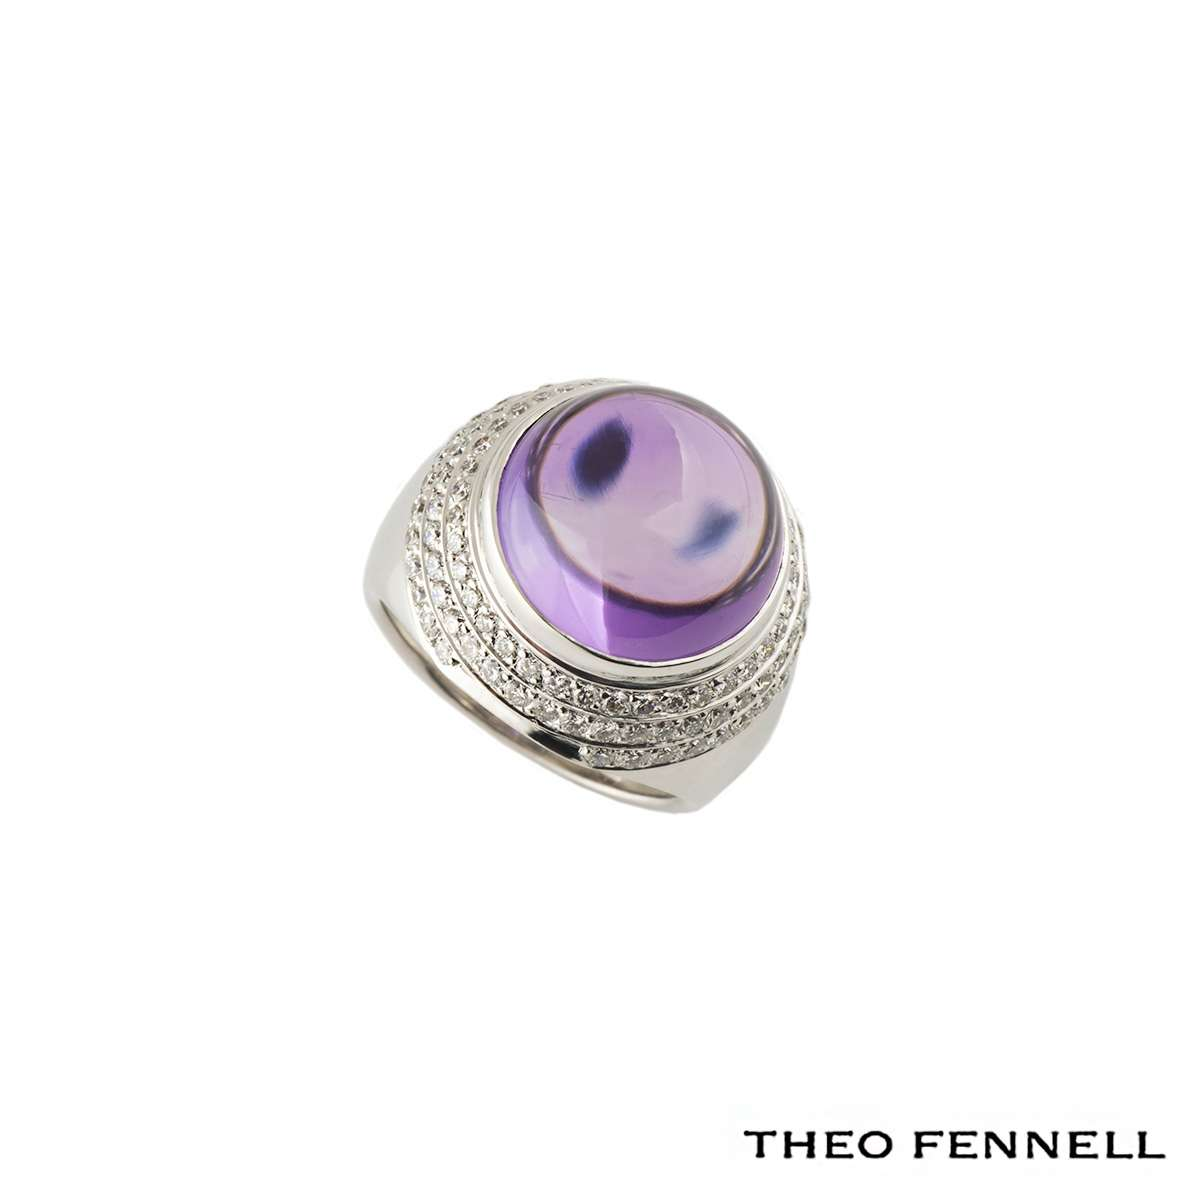 Theo Fennell Diamond and Amethyst Dress Ring